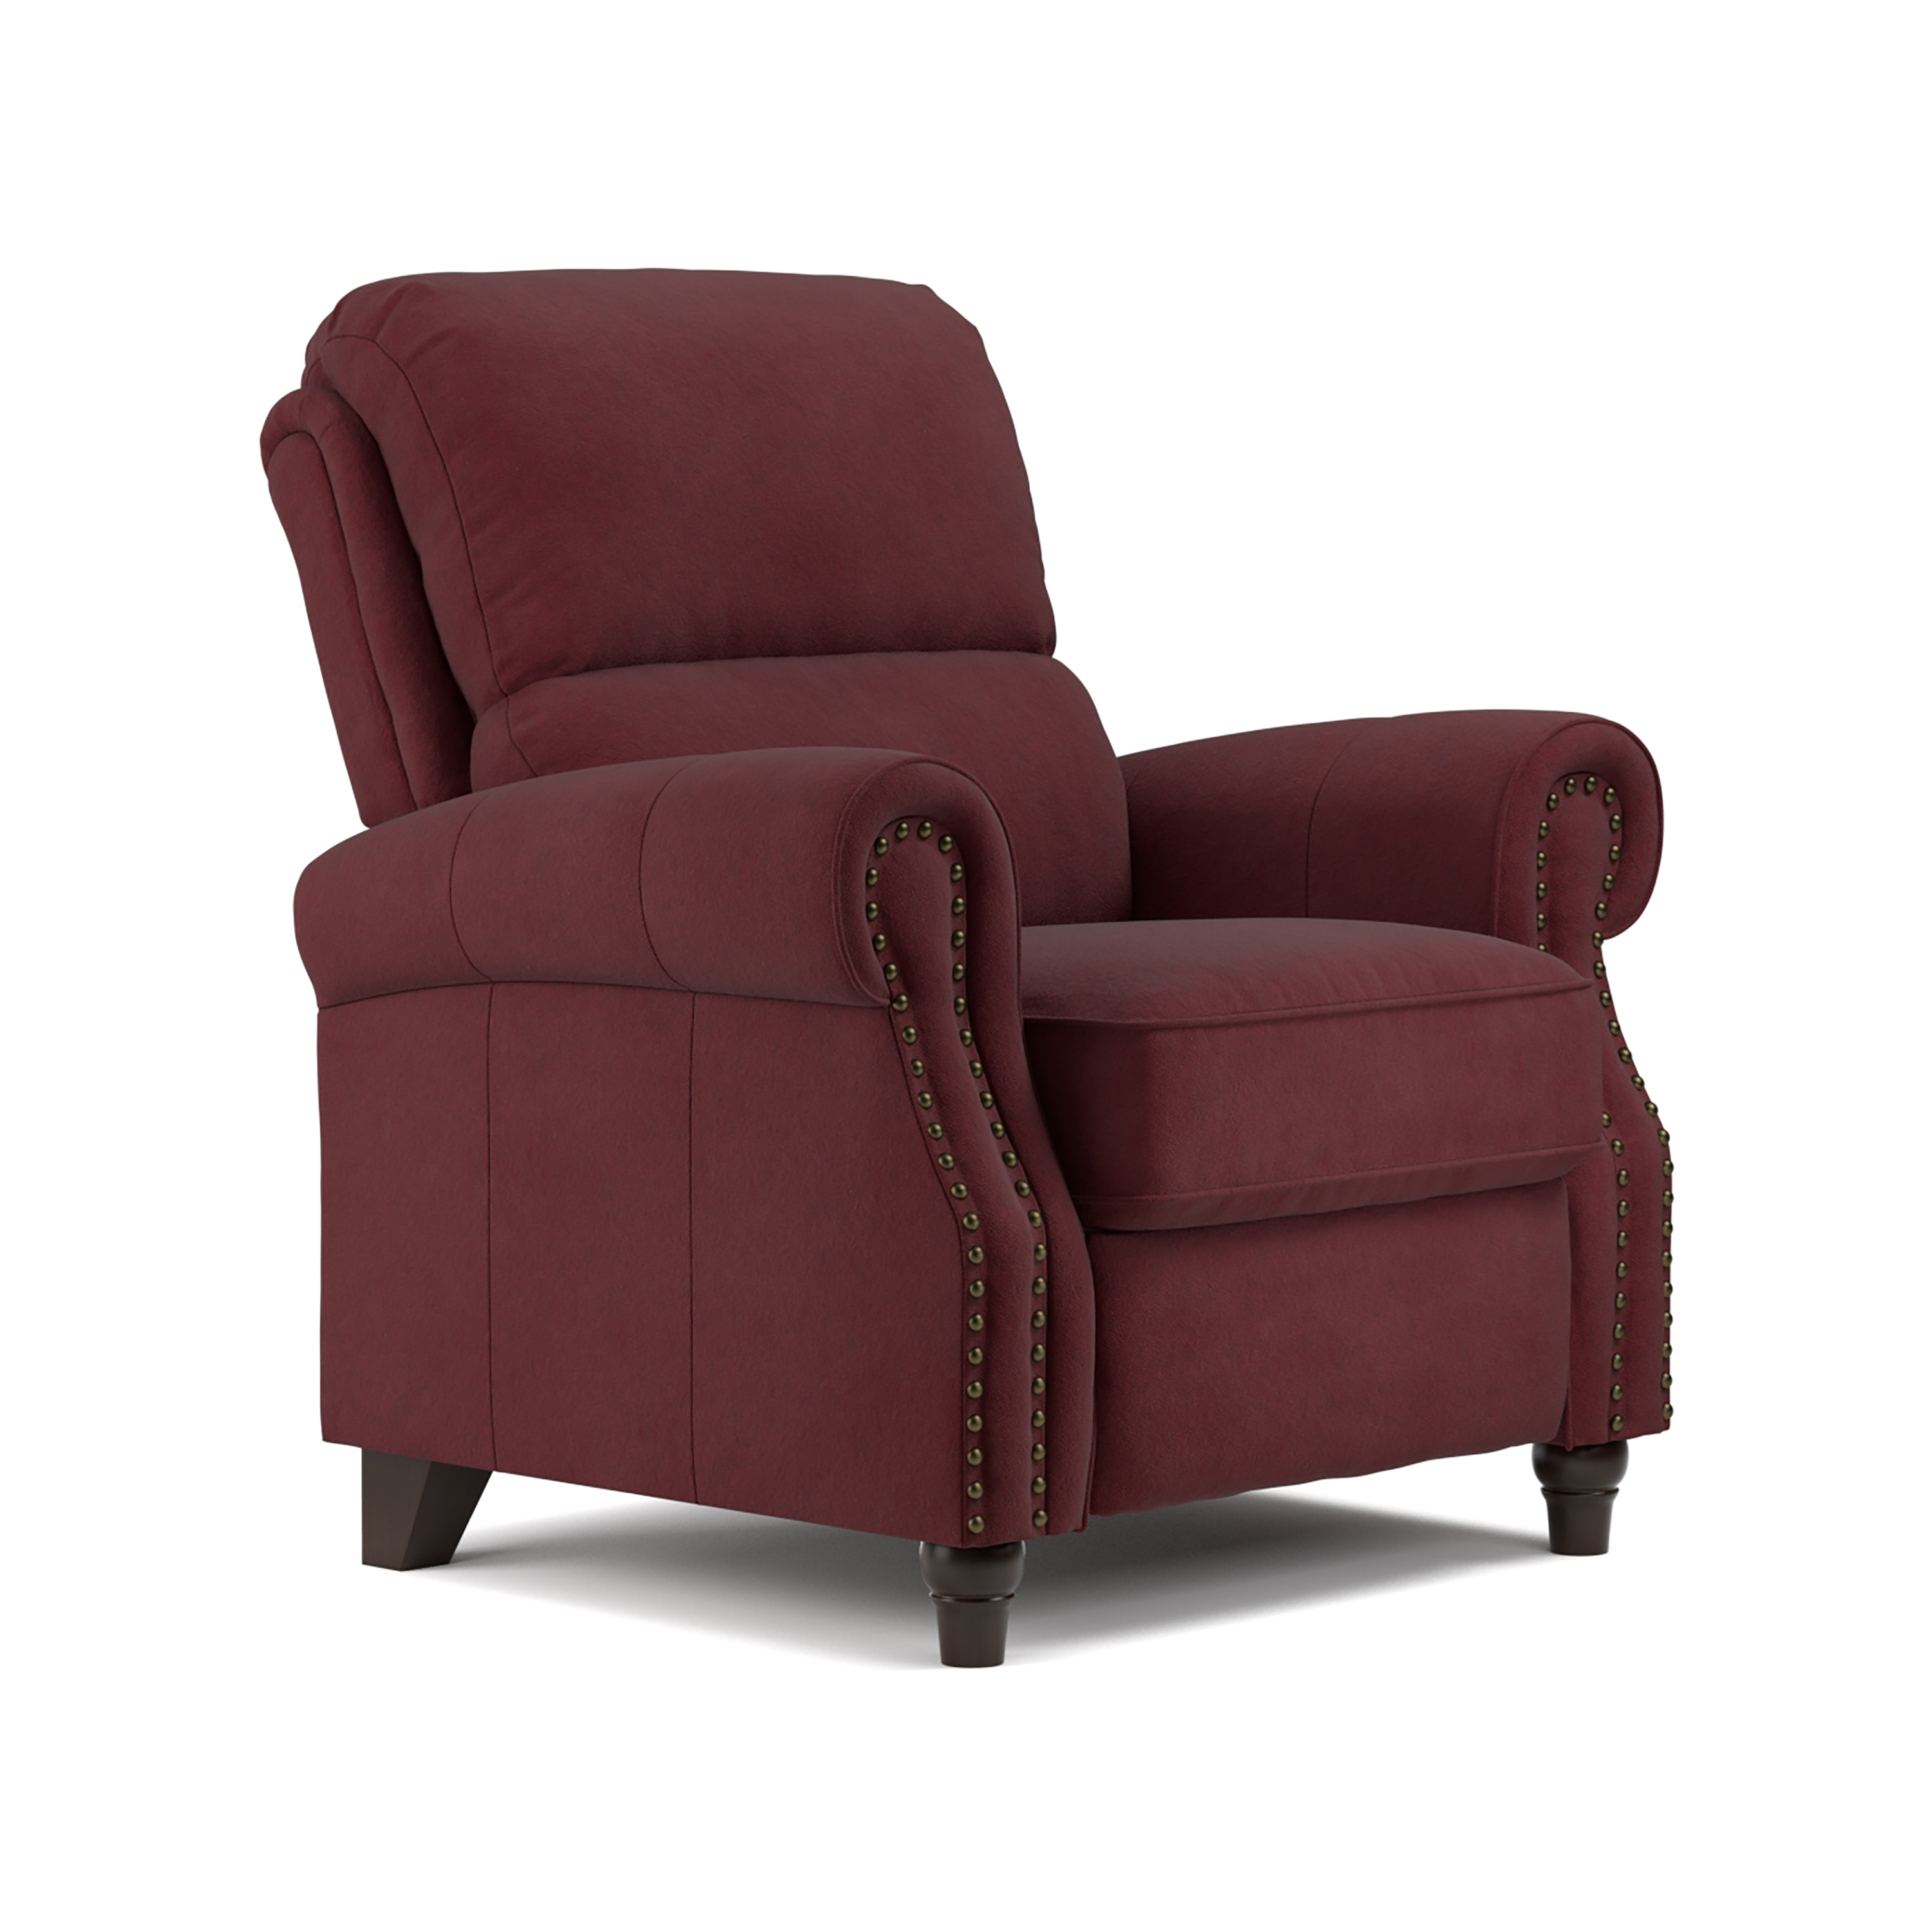 Superbe Shop Clay Alder Home Pisgah Burgundy Red Pebbles Suede Push Back Recliner  Chair   On Sale   Free Shipping Today   Overstock.com   20689936